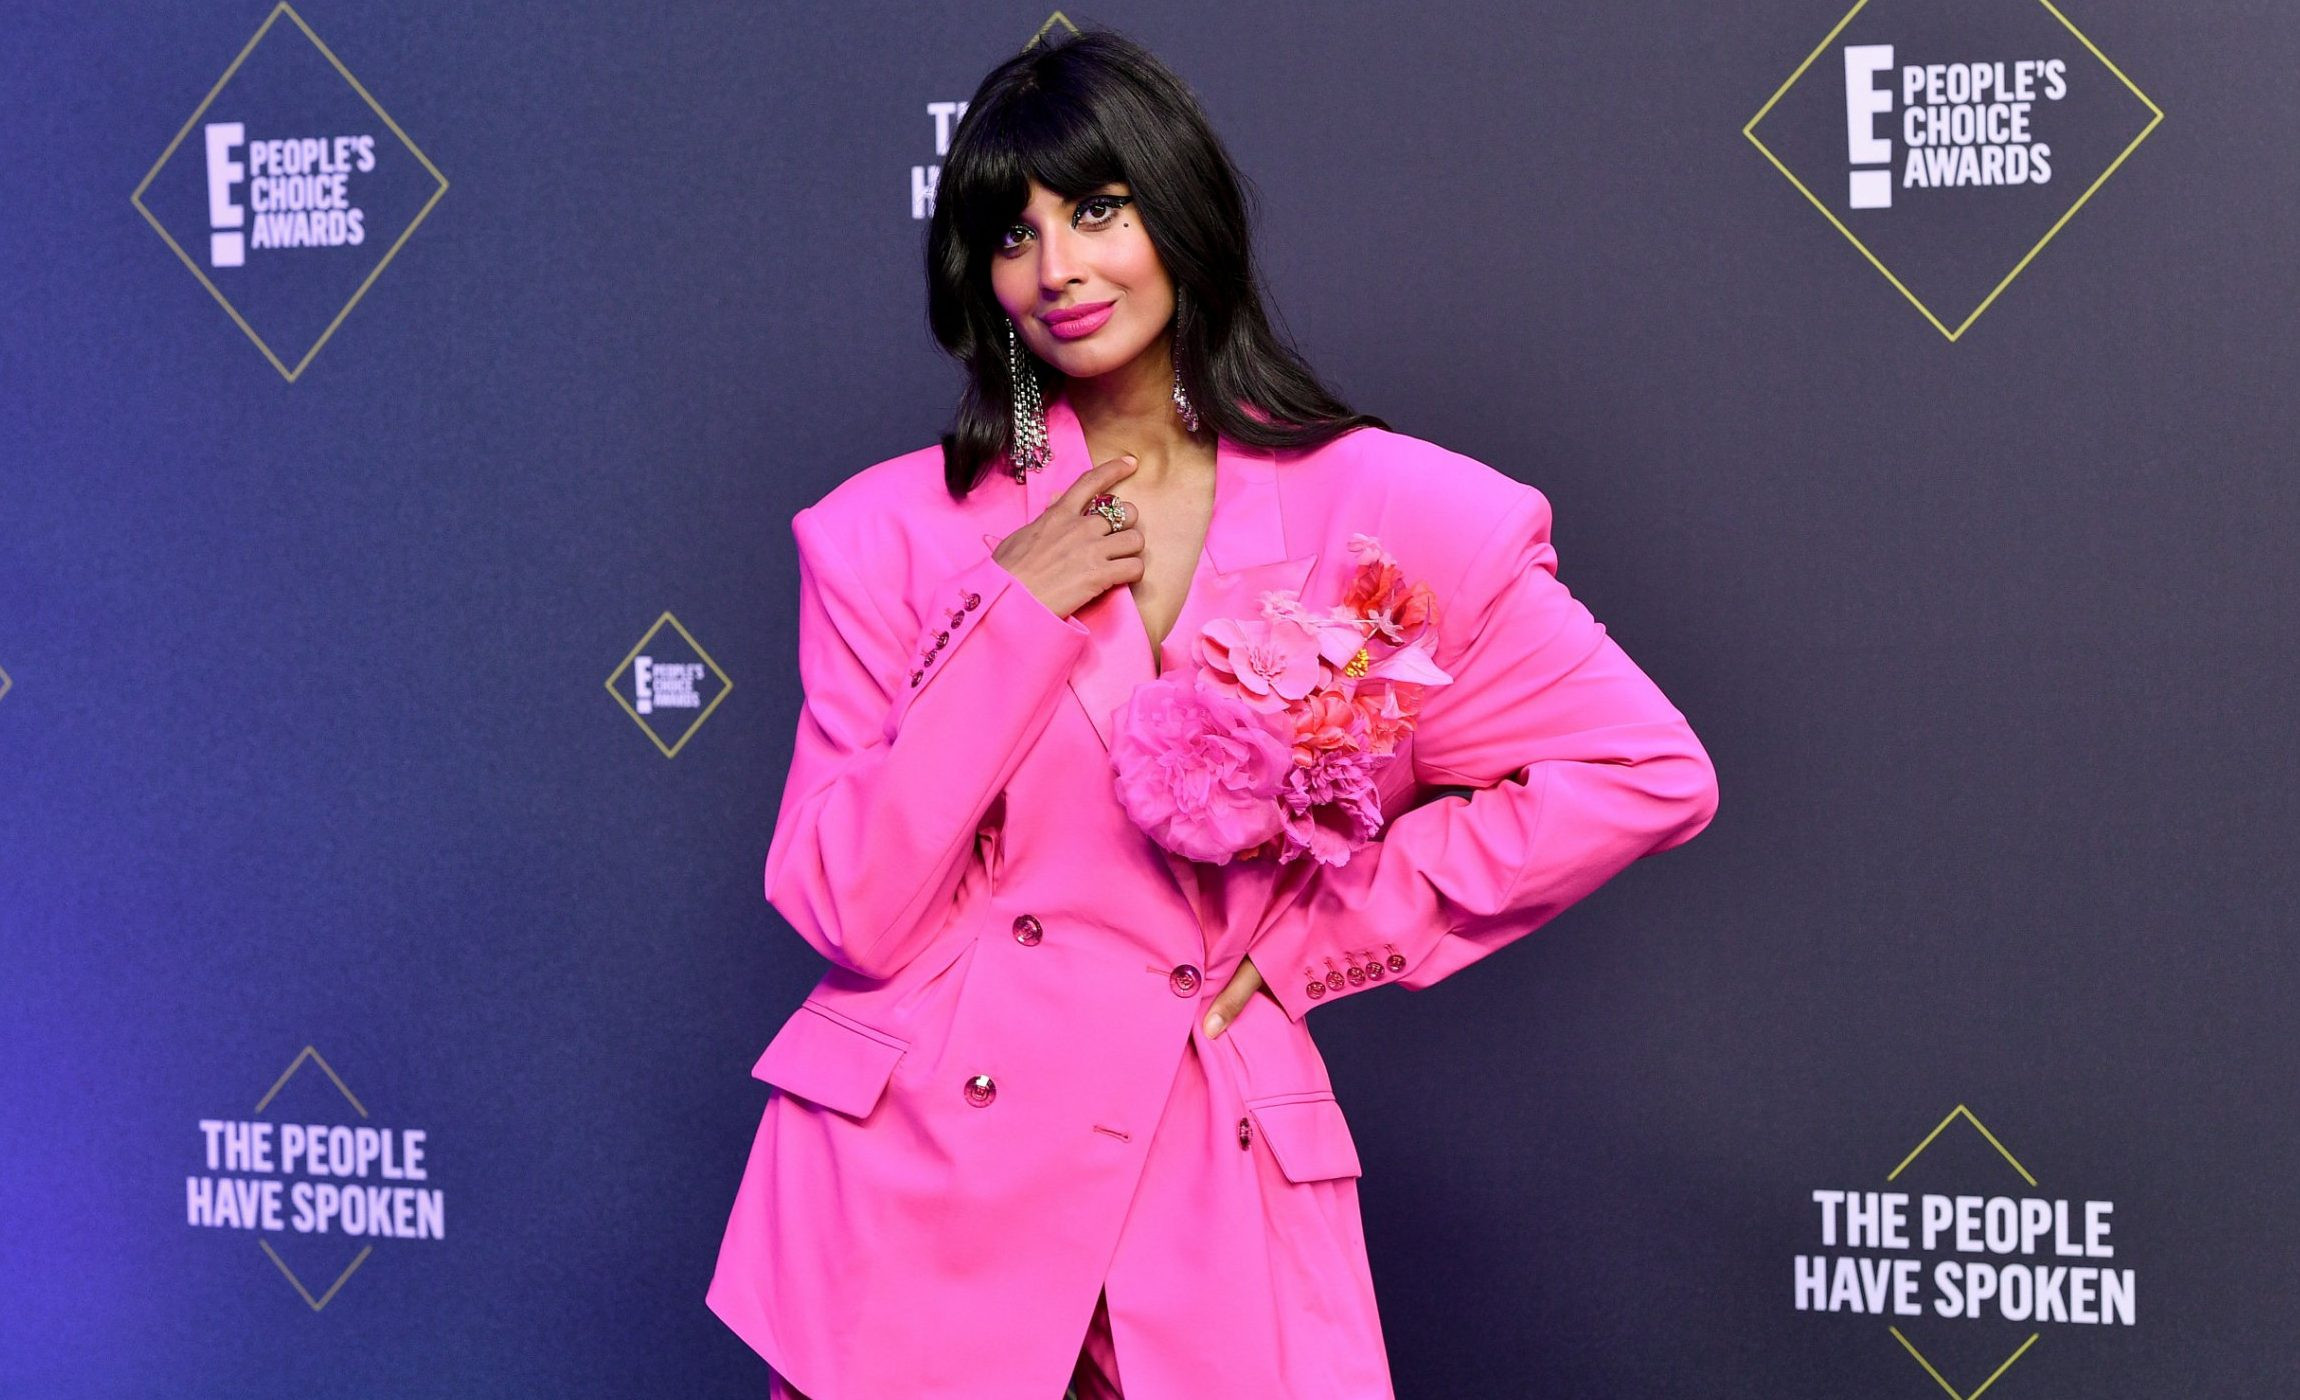 Jameela Jamil 'lost all her money aged 30' from lack of education, mental illness and being overly generous